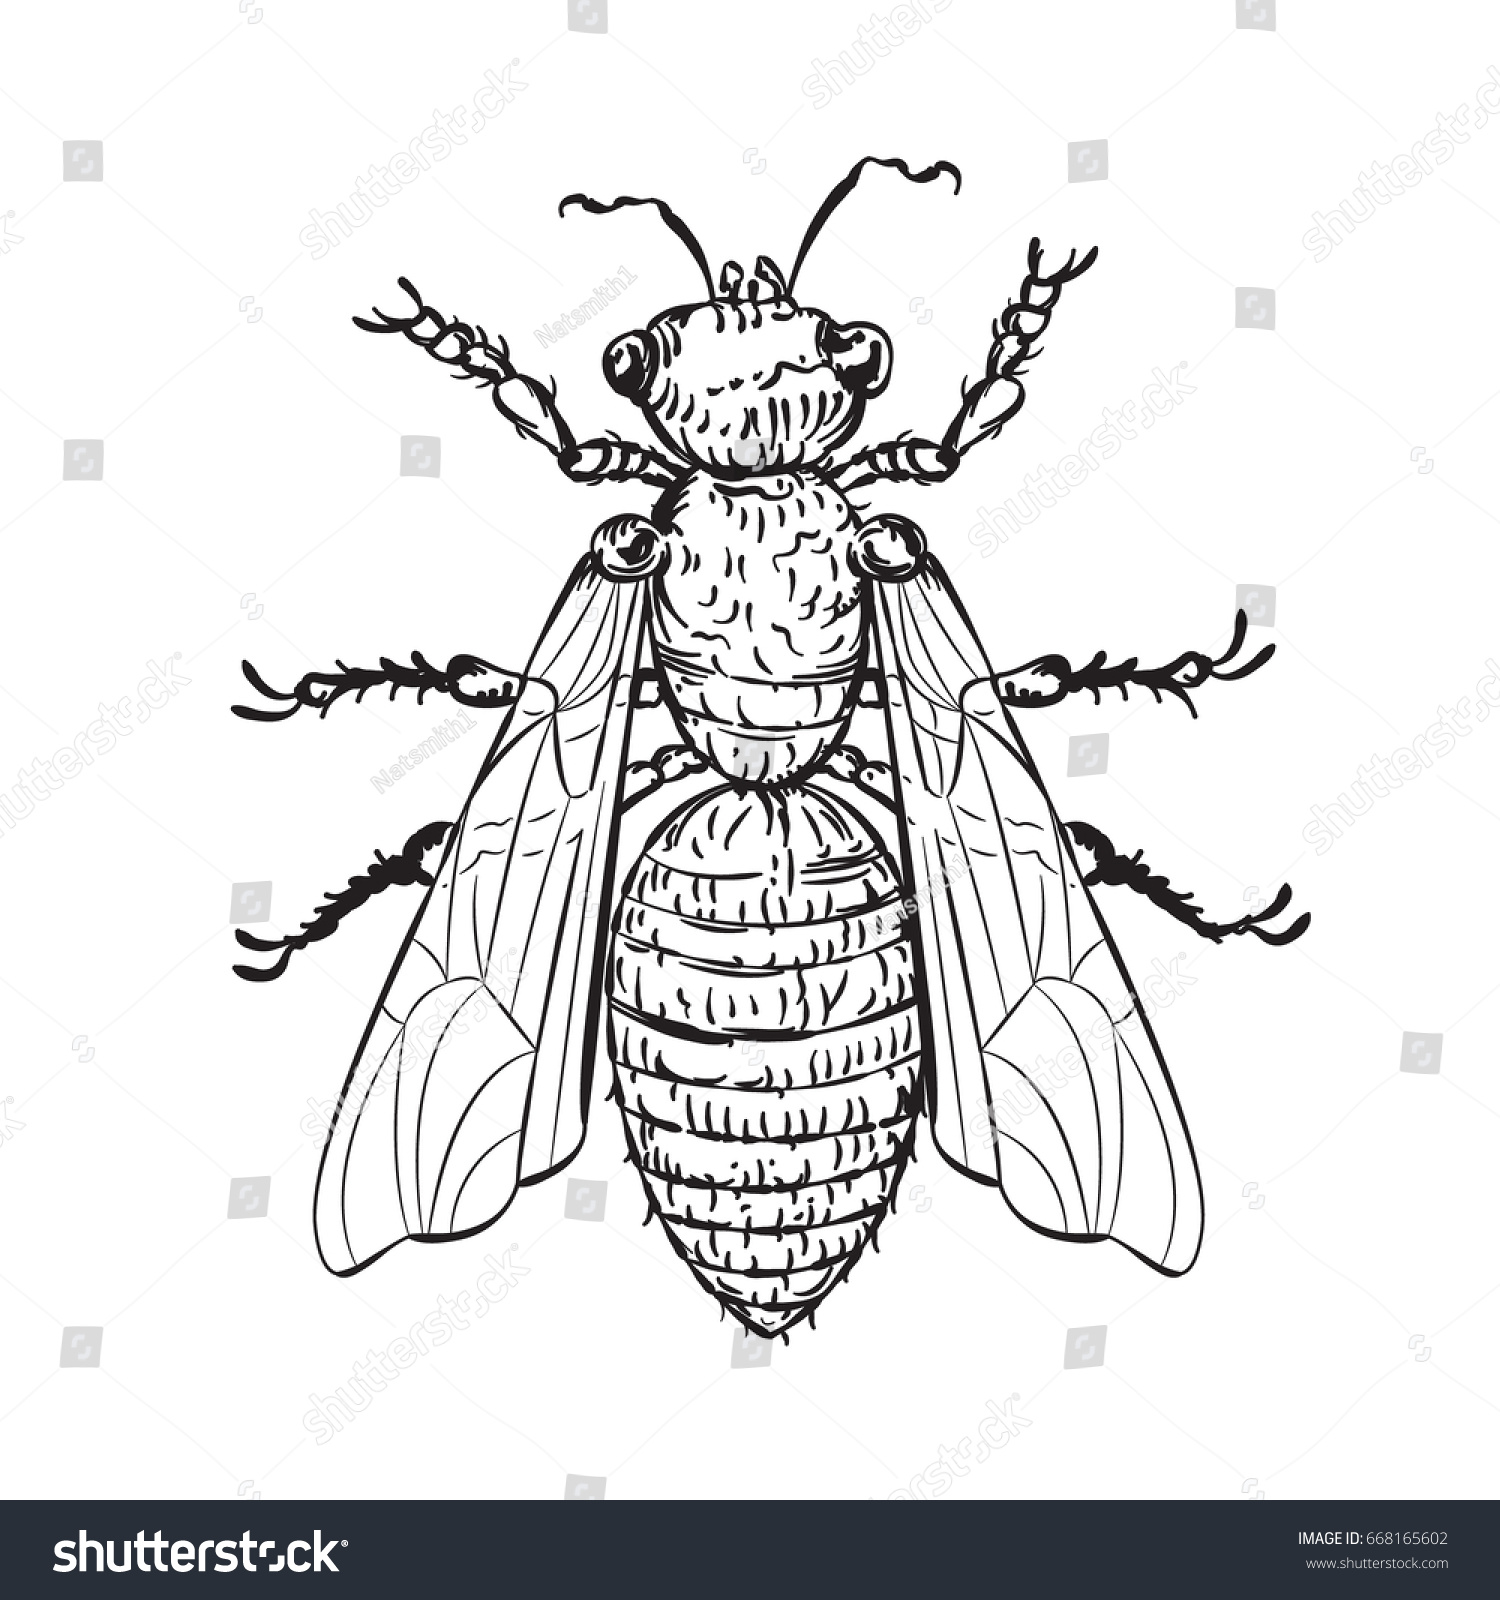 Line Drawing Editor : Vector drawing house fly line art stock